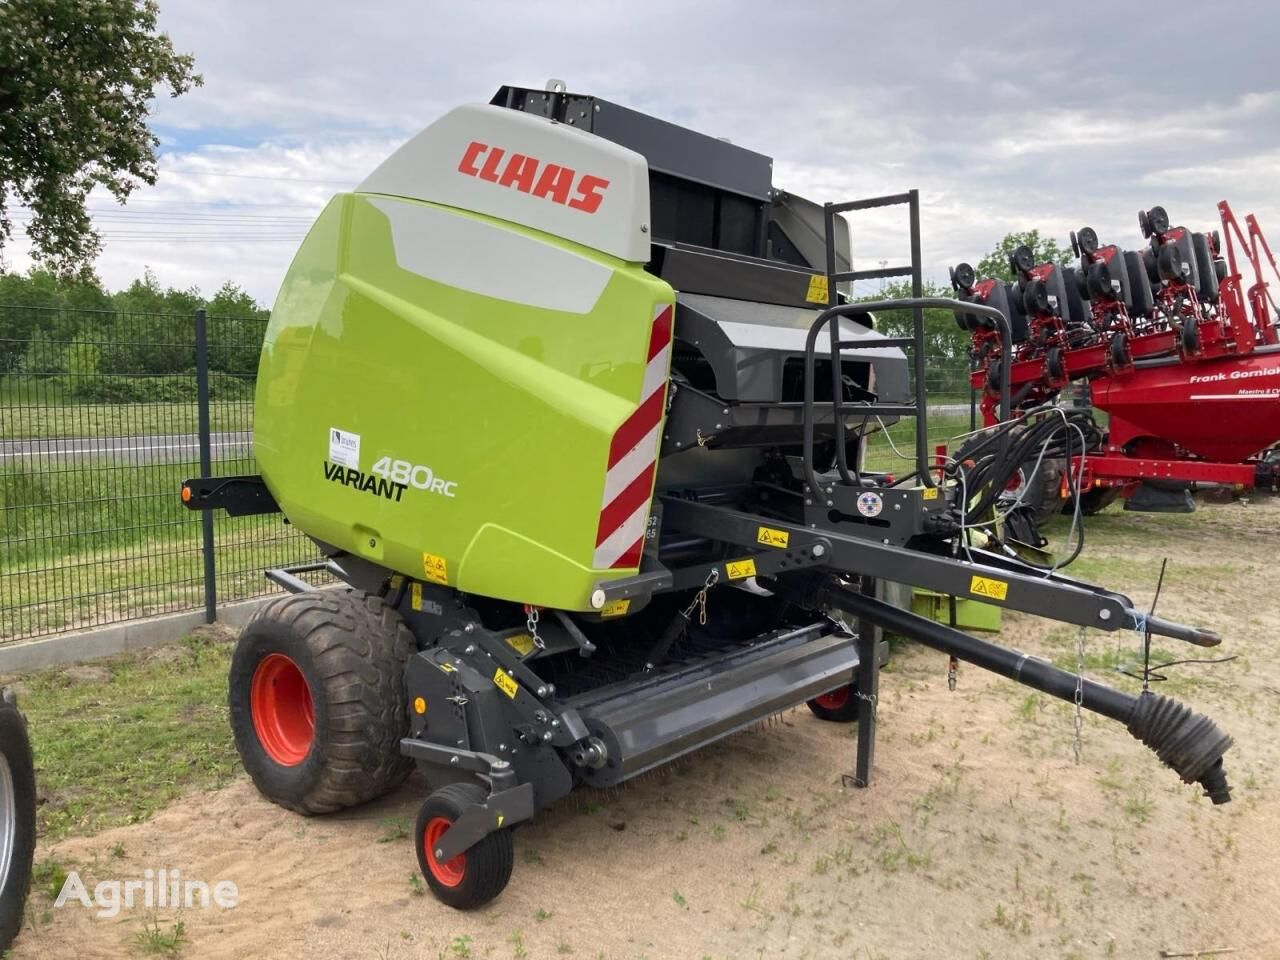 CLAAS variant 480 rc pro square baler